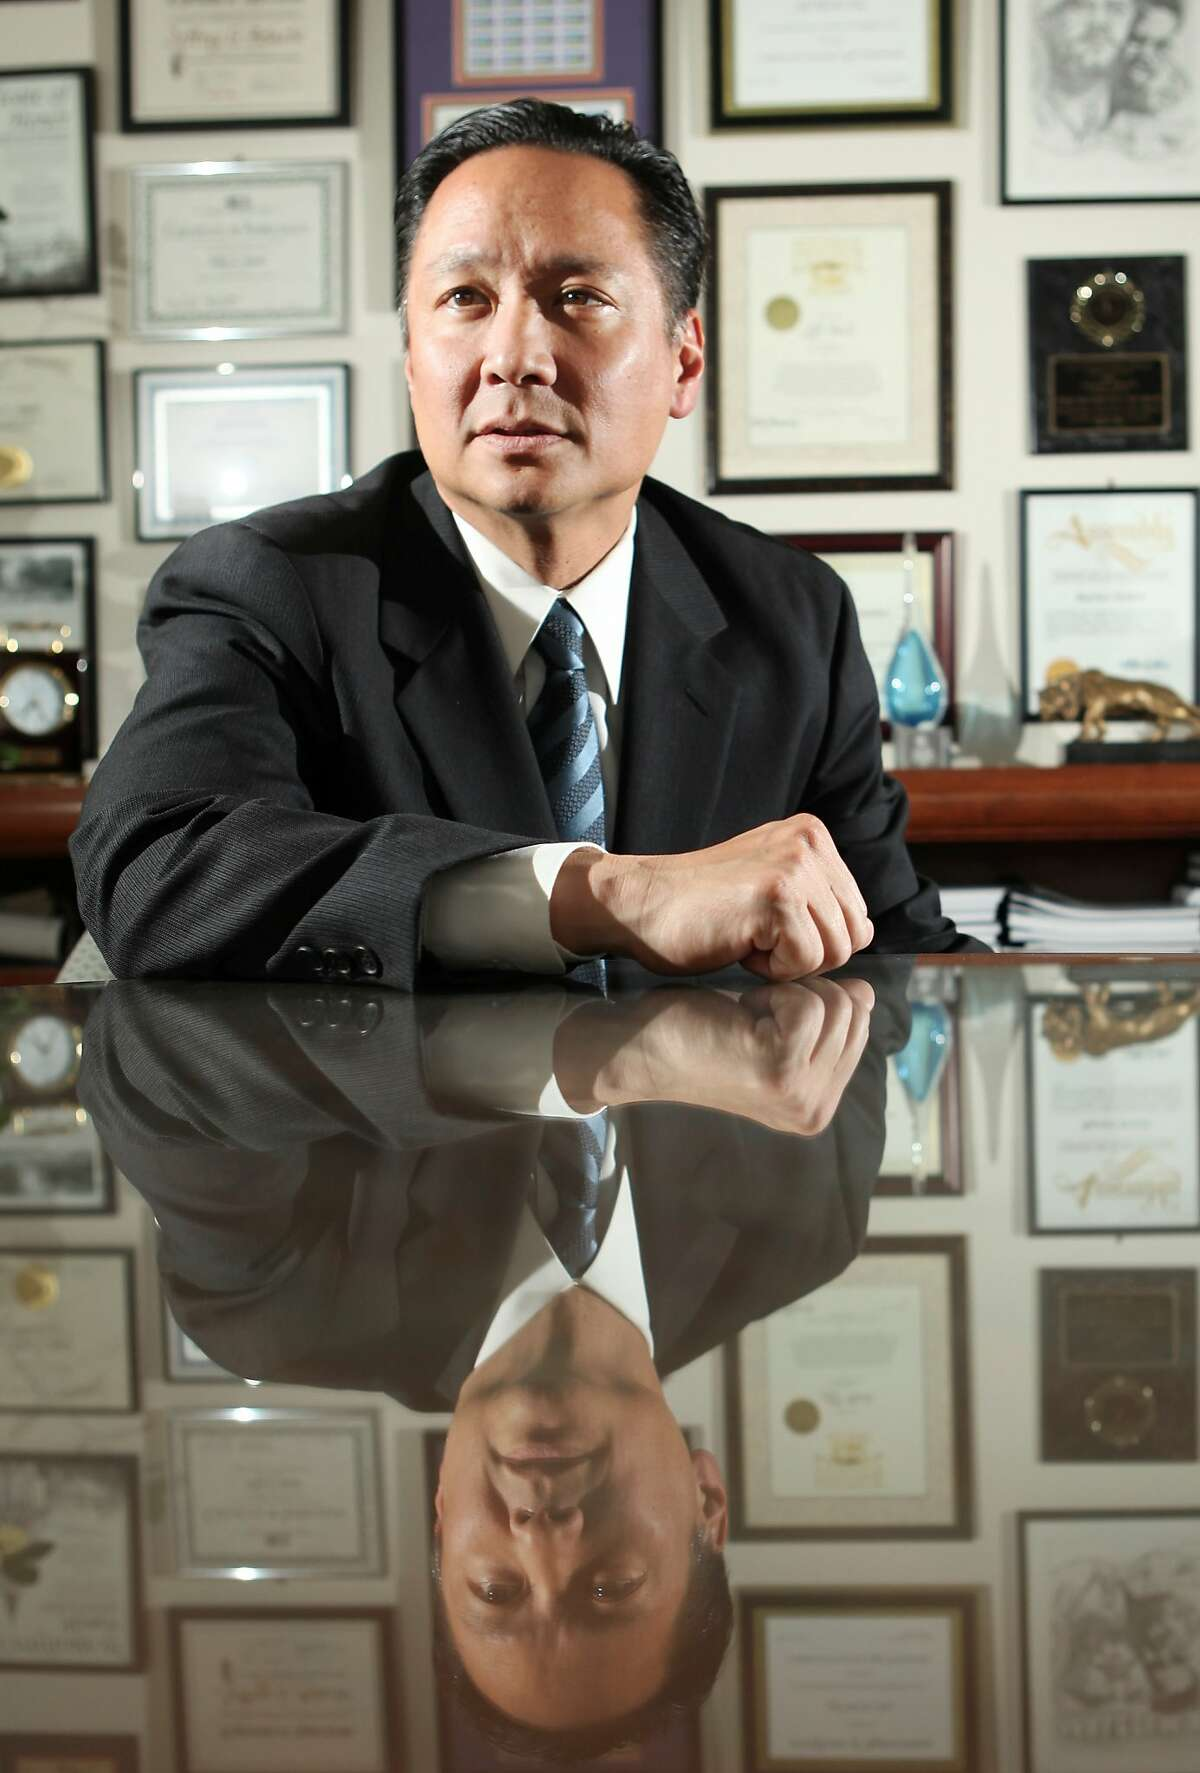 In this photo from Tuesday, June 9, 2009, San Francisco Public Defender Jeff Adachi is photographed at his office in San Francisco. (AP Photo/Jeff Chiu)